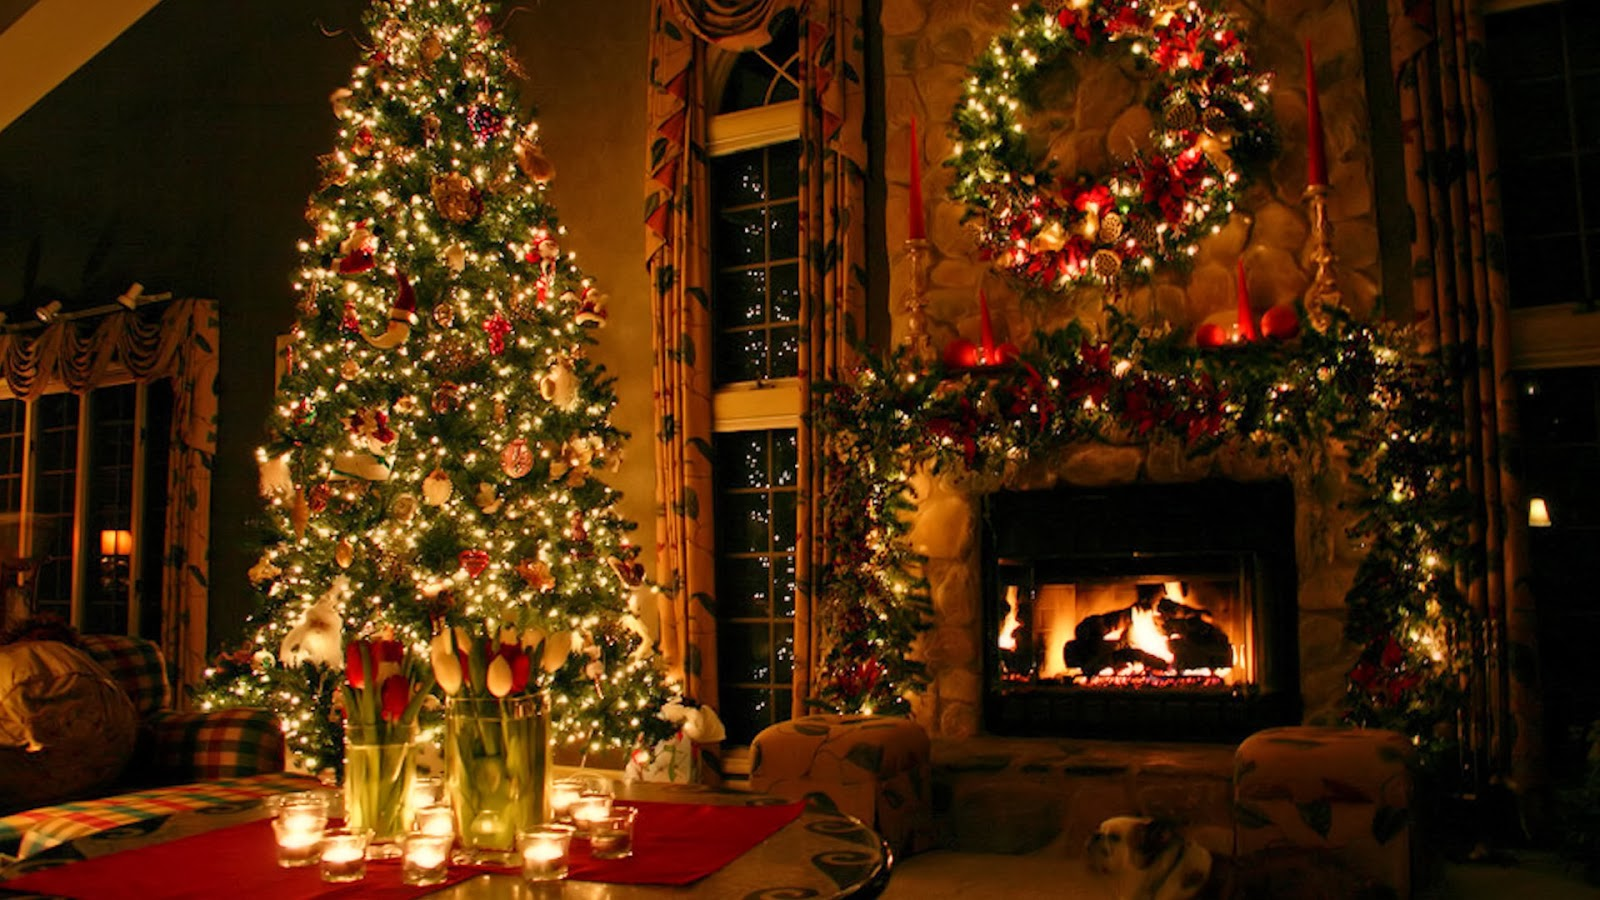 Christmas decorations ideas world top blogger for Inside xmas decorations